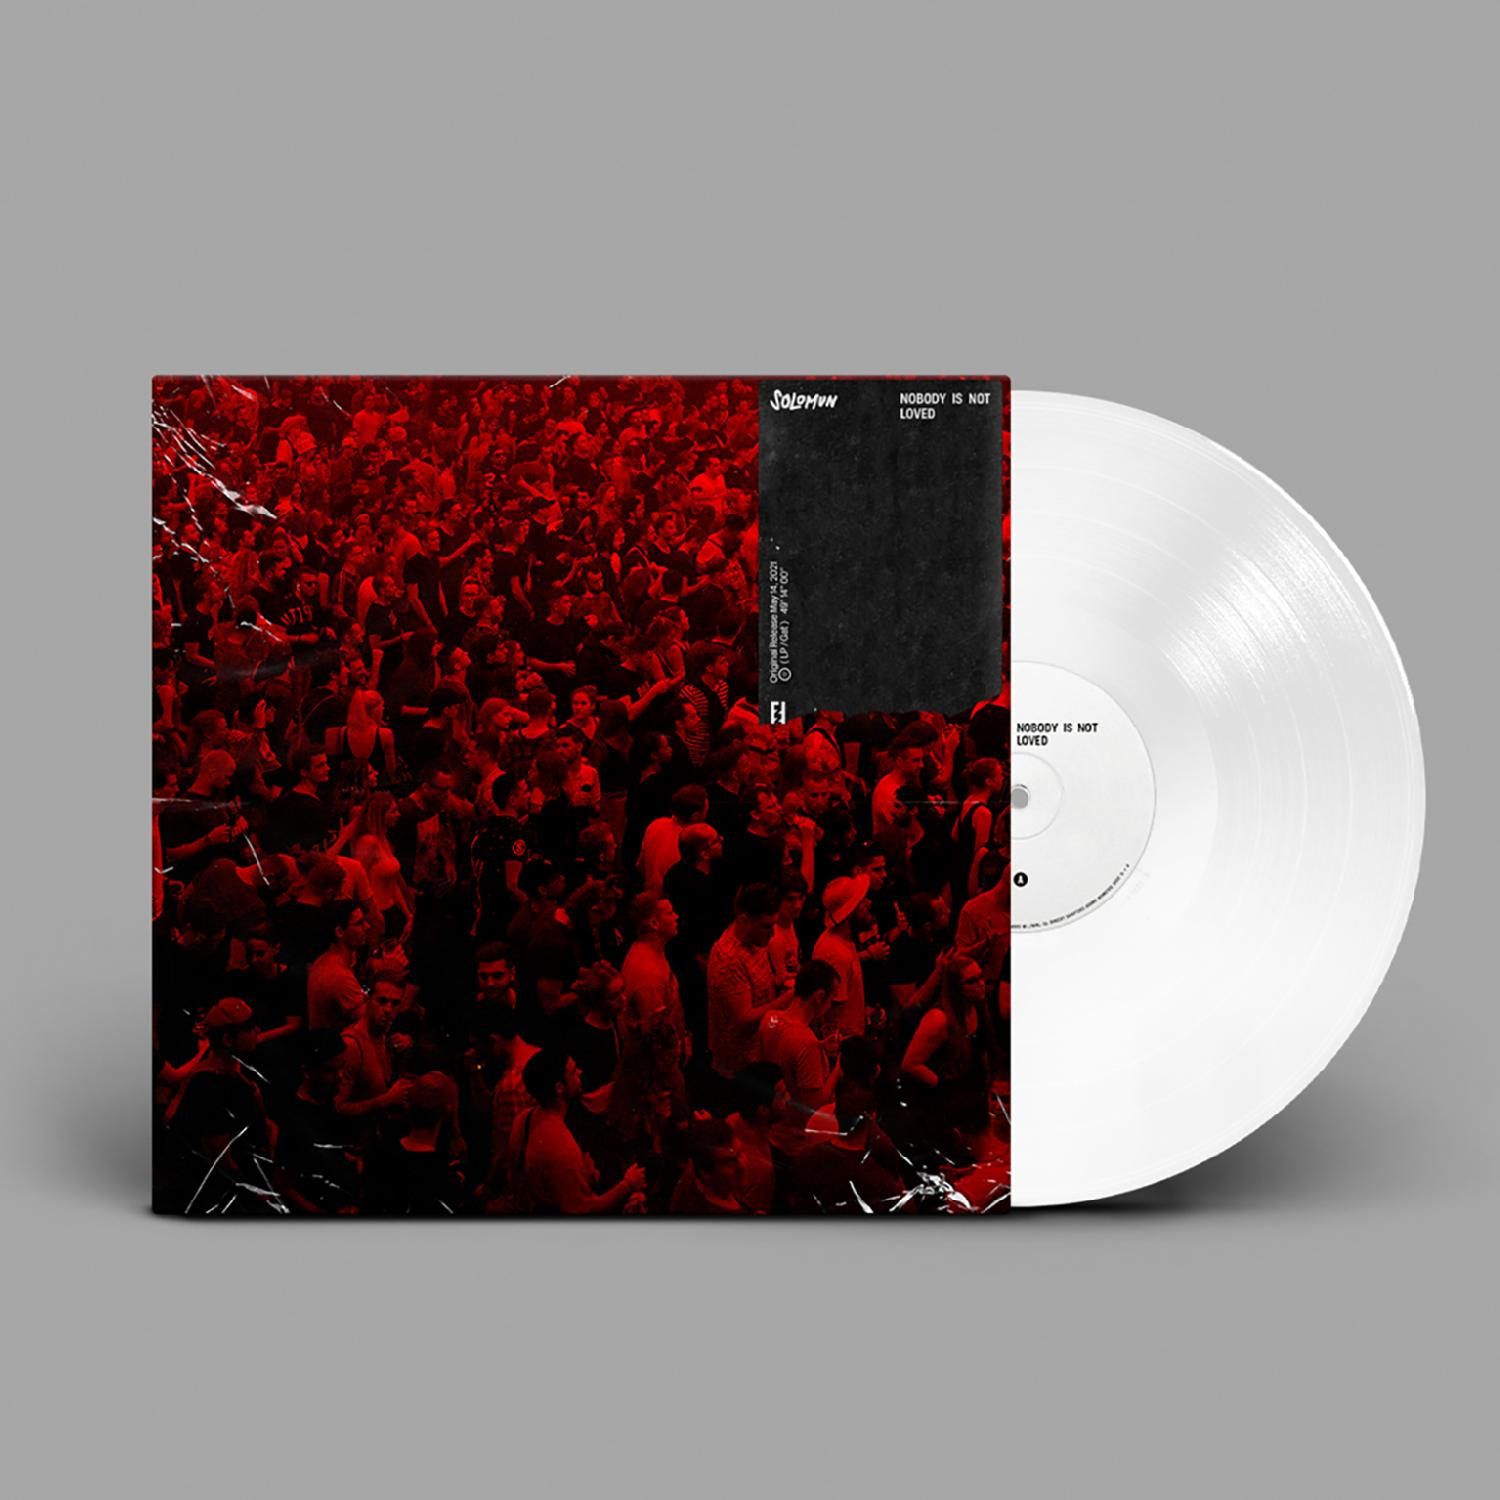 Solomun Nobody Is Not Loved (2x Vinyl) OUT MAY 15TH 2021 LP, PREORDER